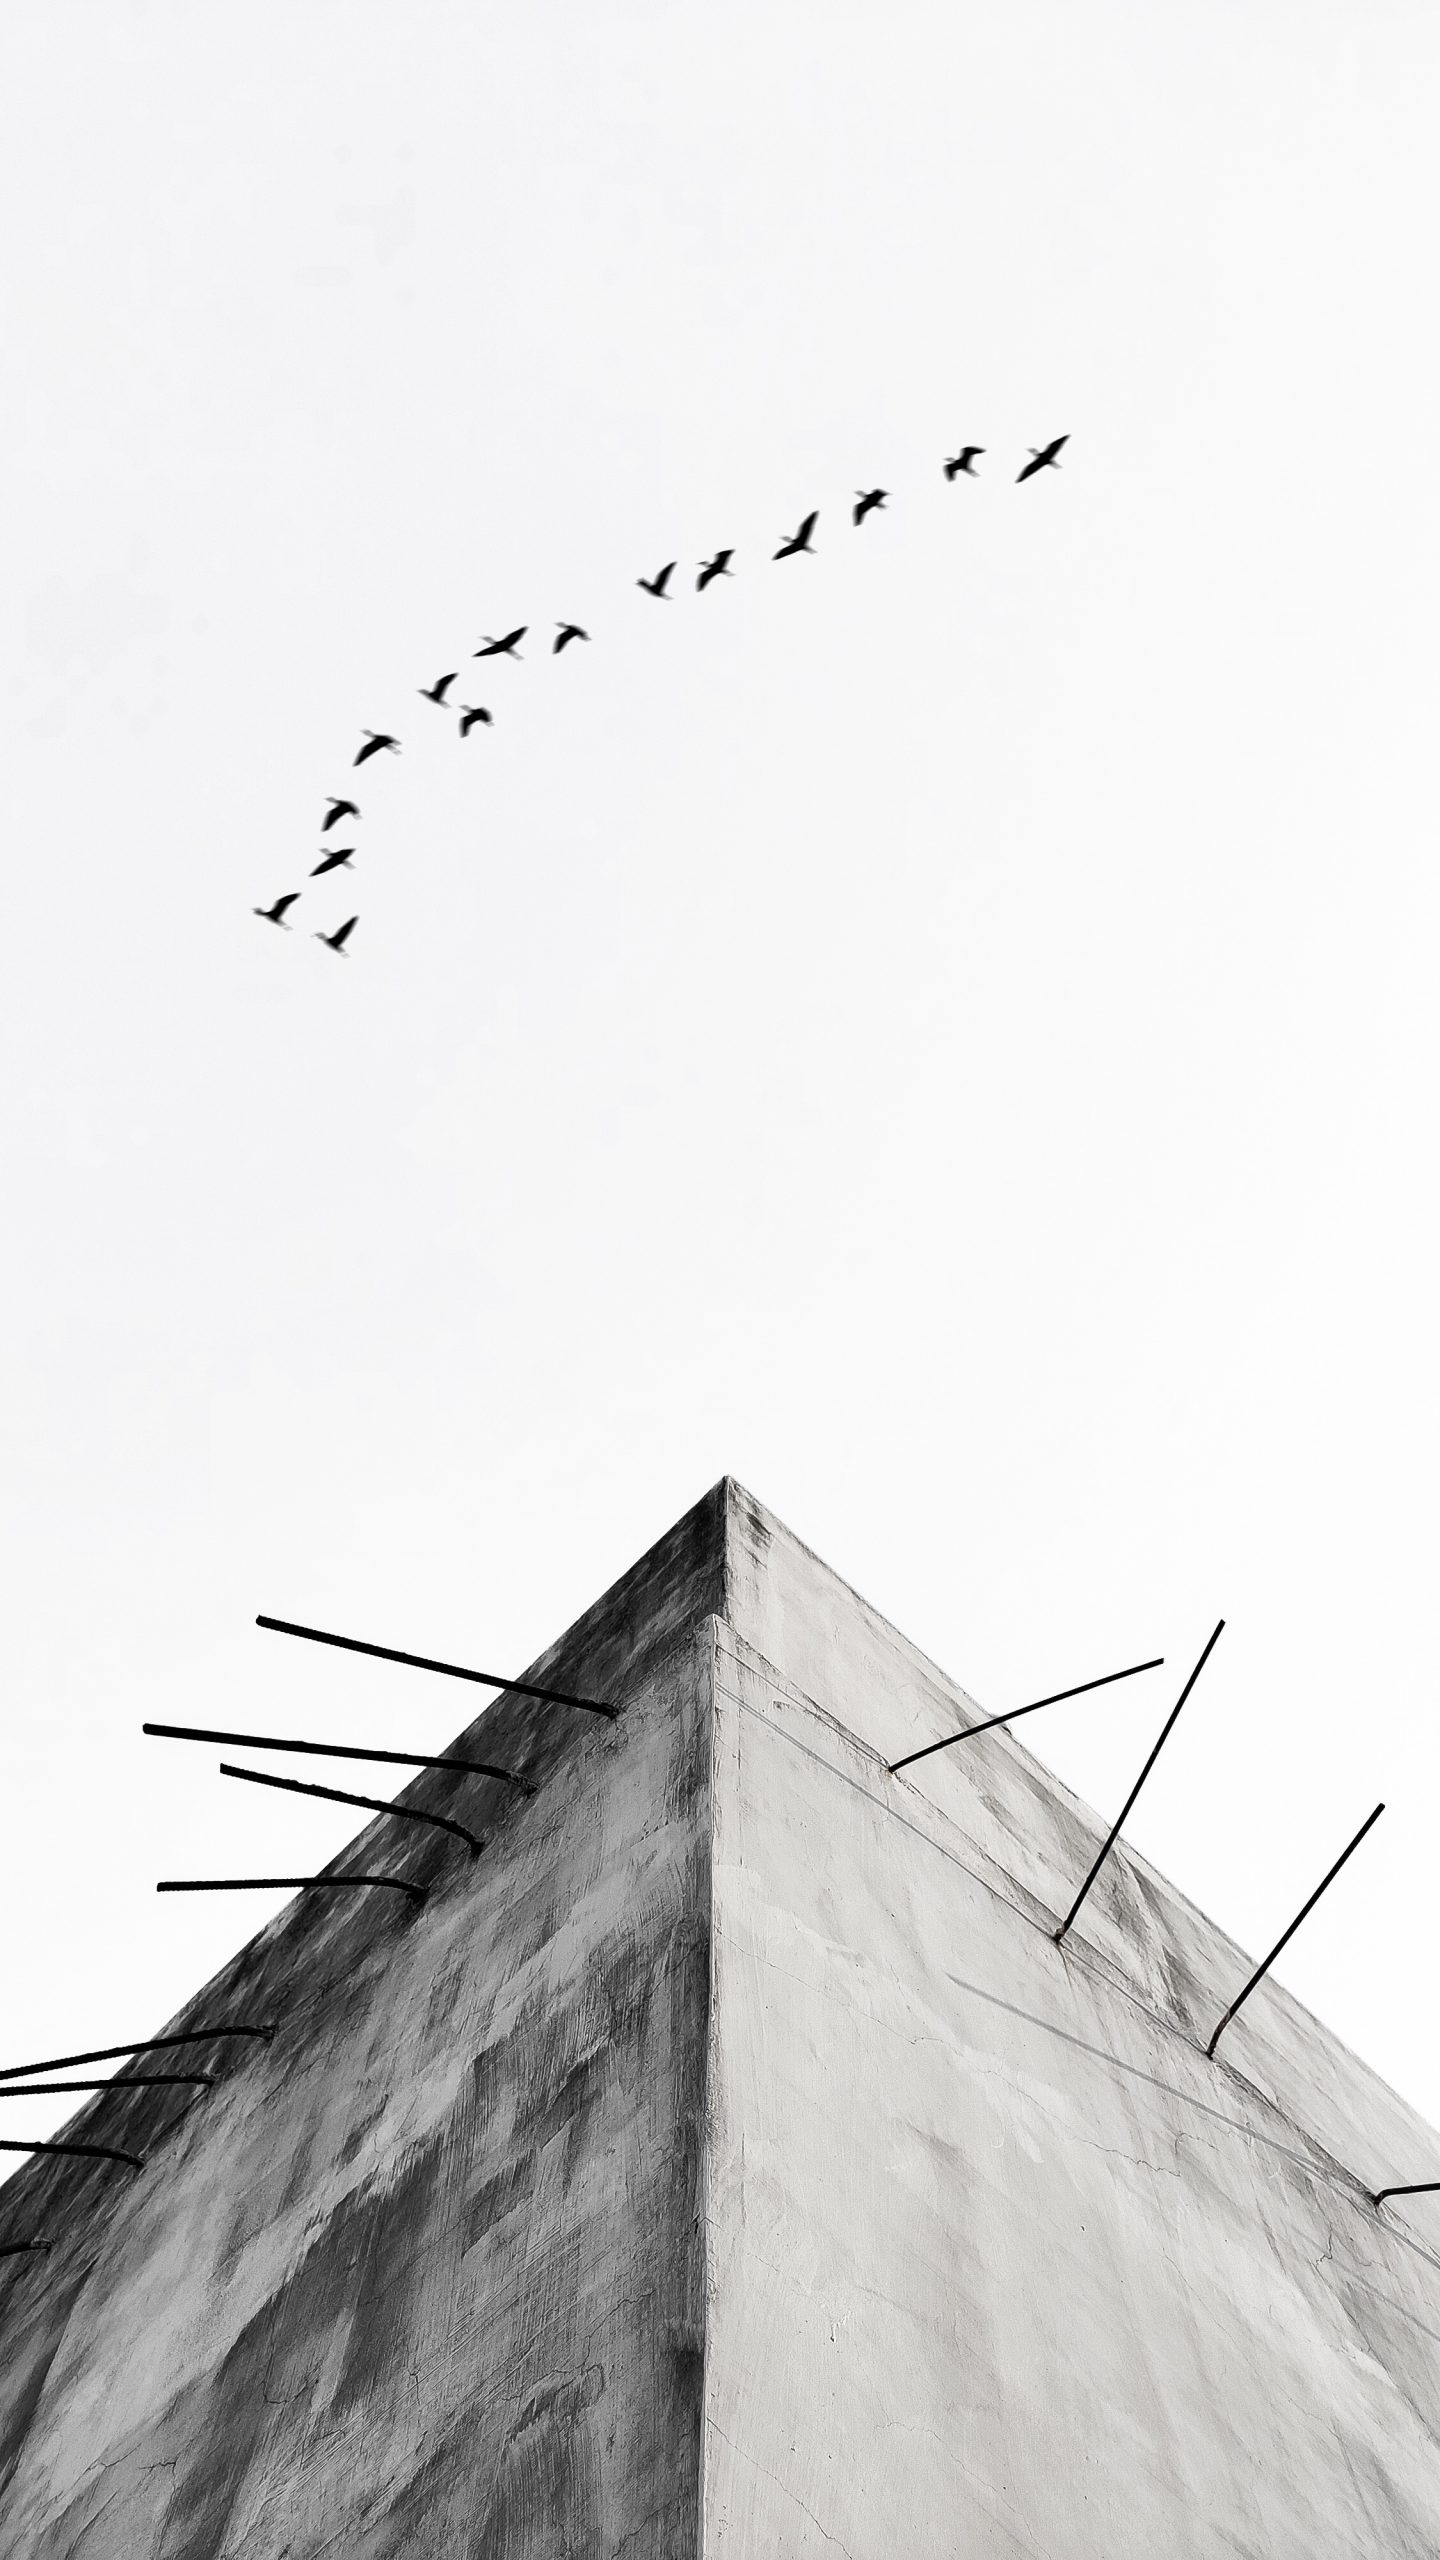 Wall and birds